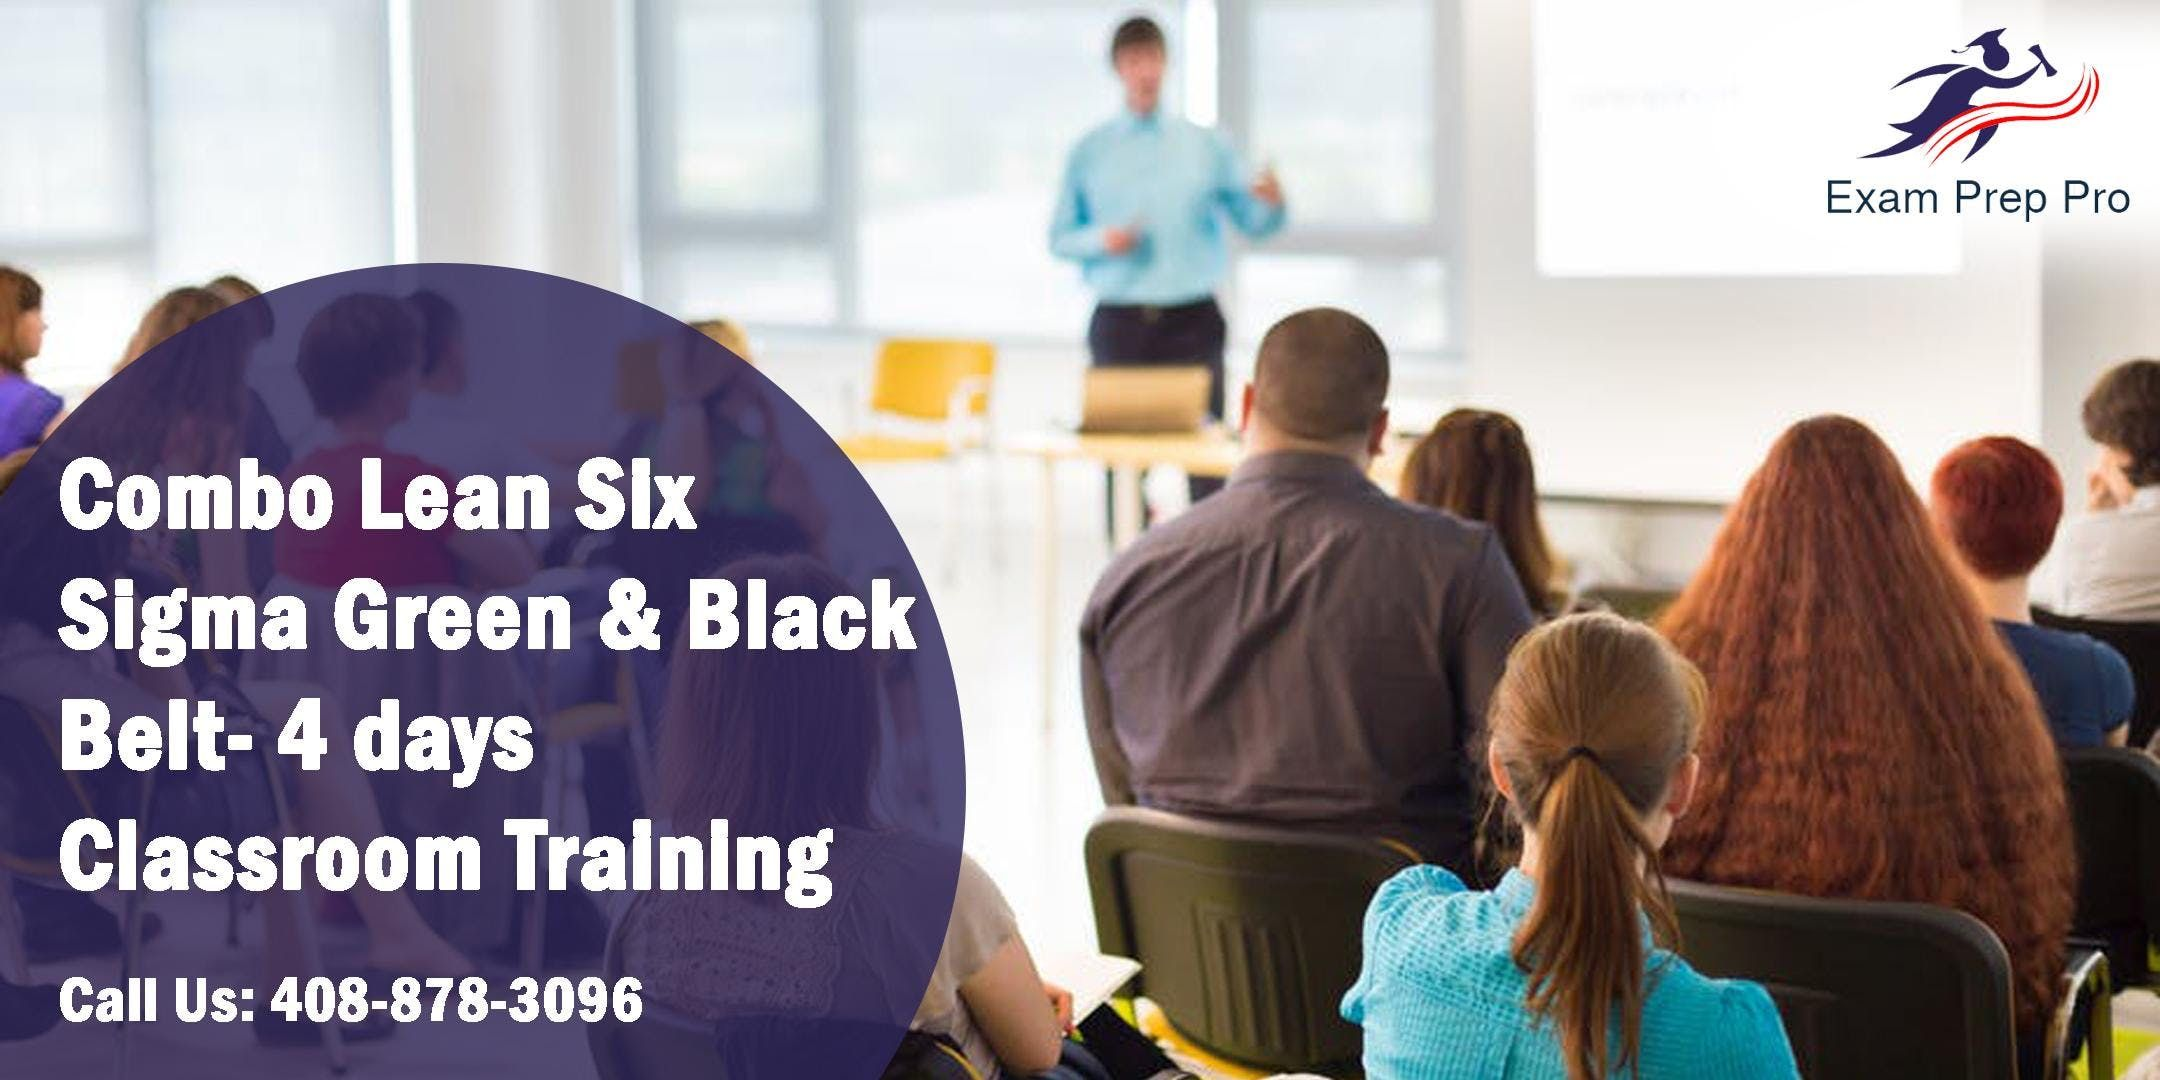 Combo Lean Six Sigma Green Belt and Black Belt- 4 days Classroom Training in BaltimoreMD